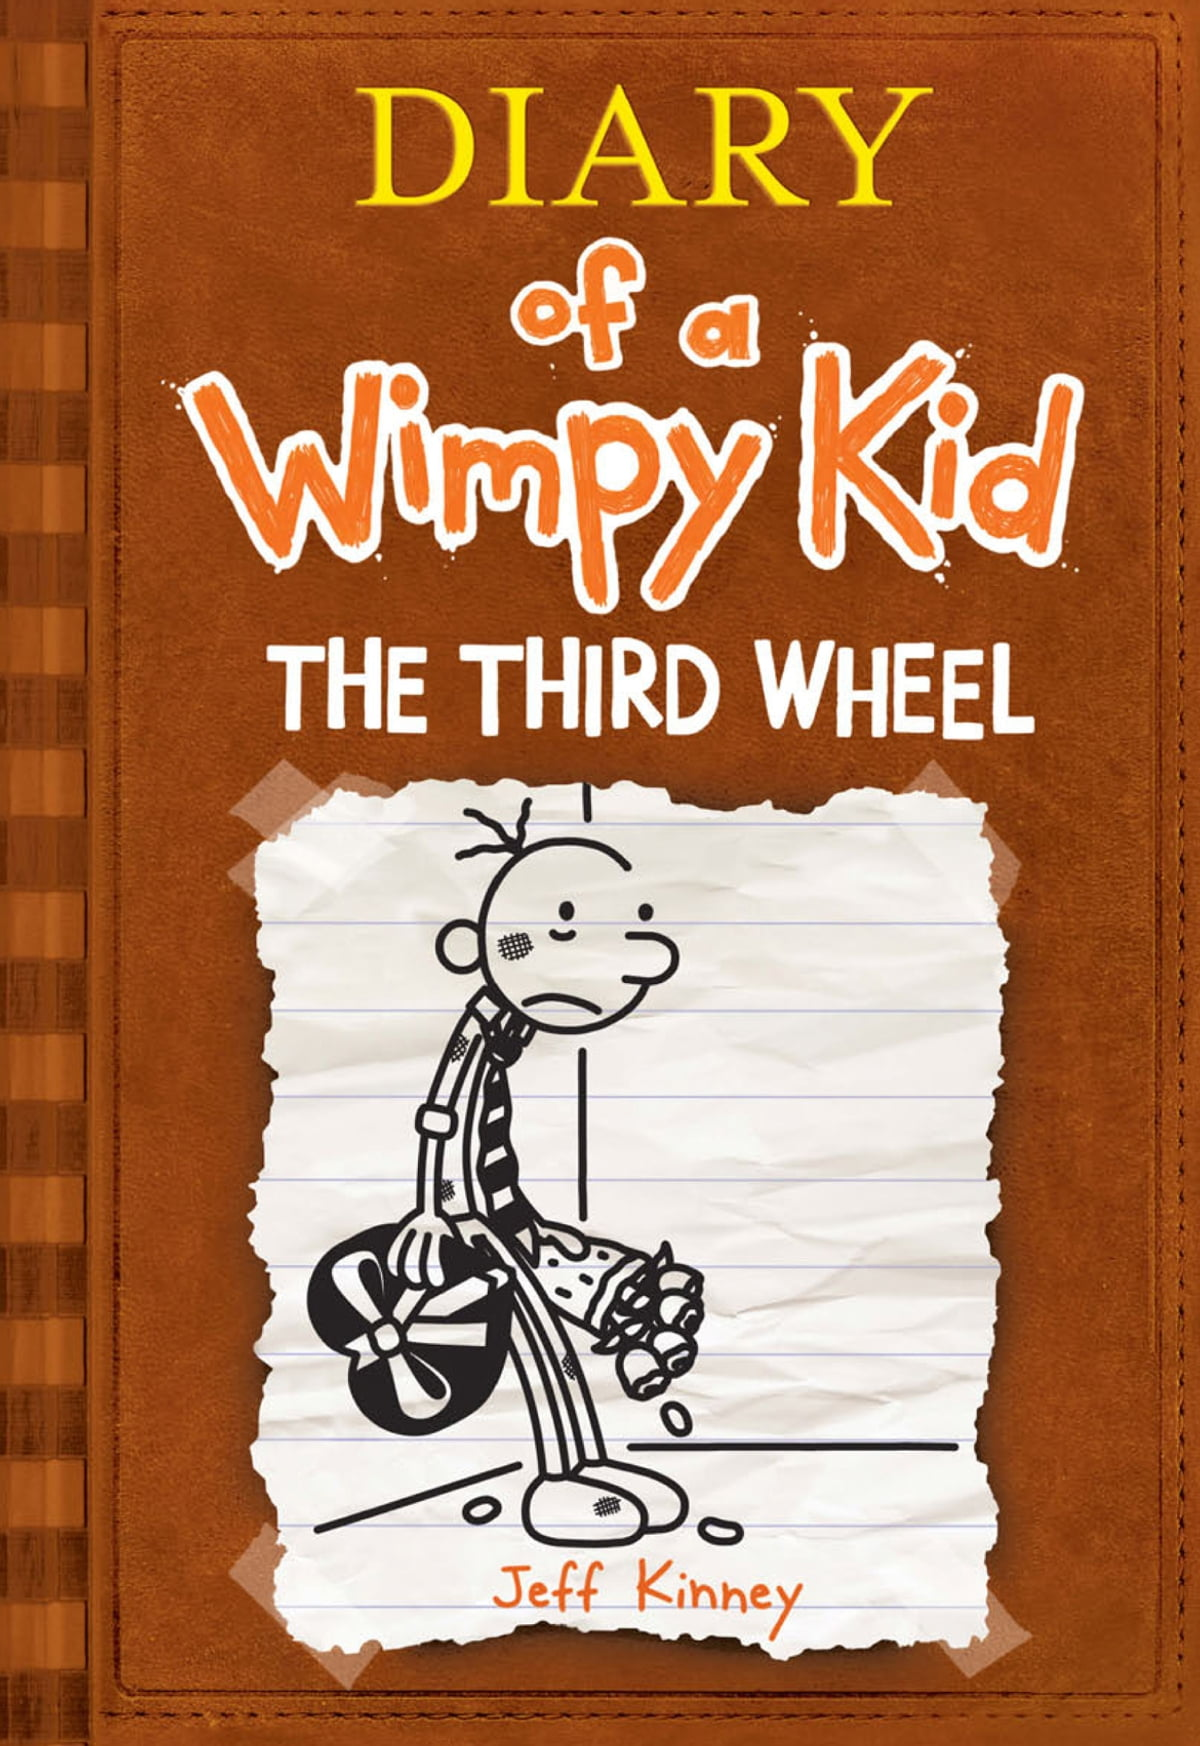 The Third Wheel Diary Of A Wimpy Kid 7 Ebook By Jeff Kinney 9781613124505 Rakuten Kobo United States